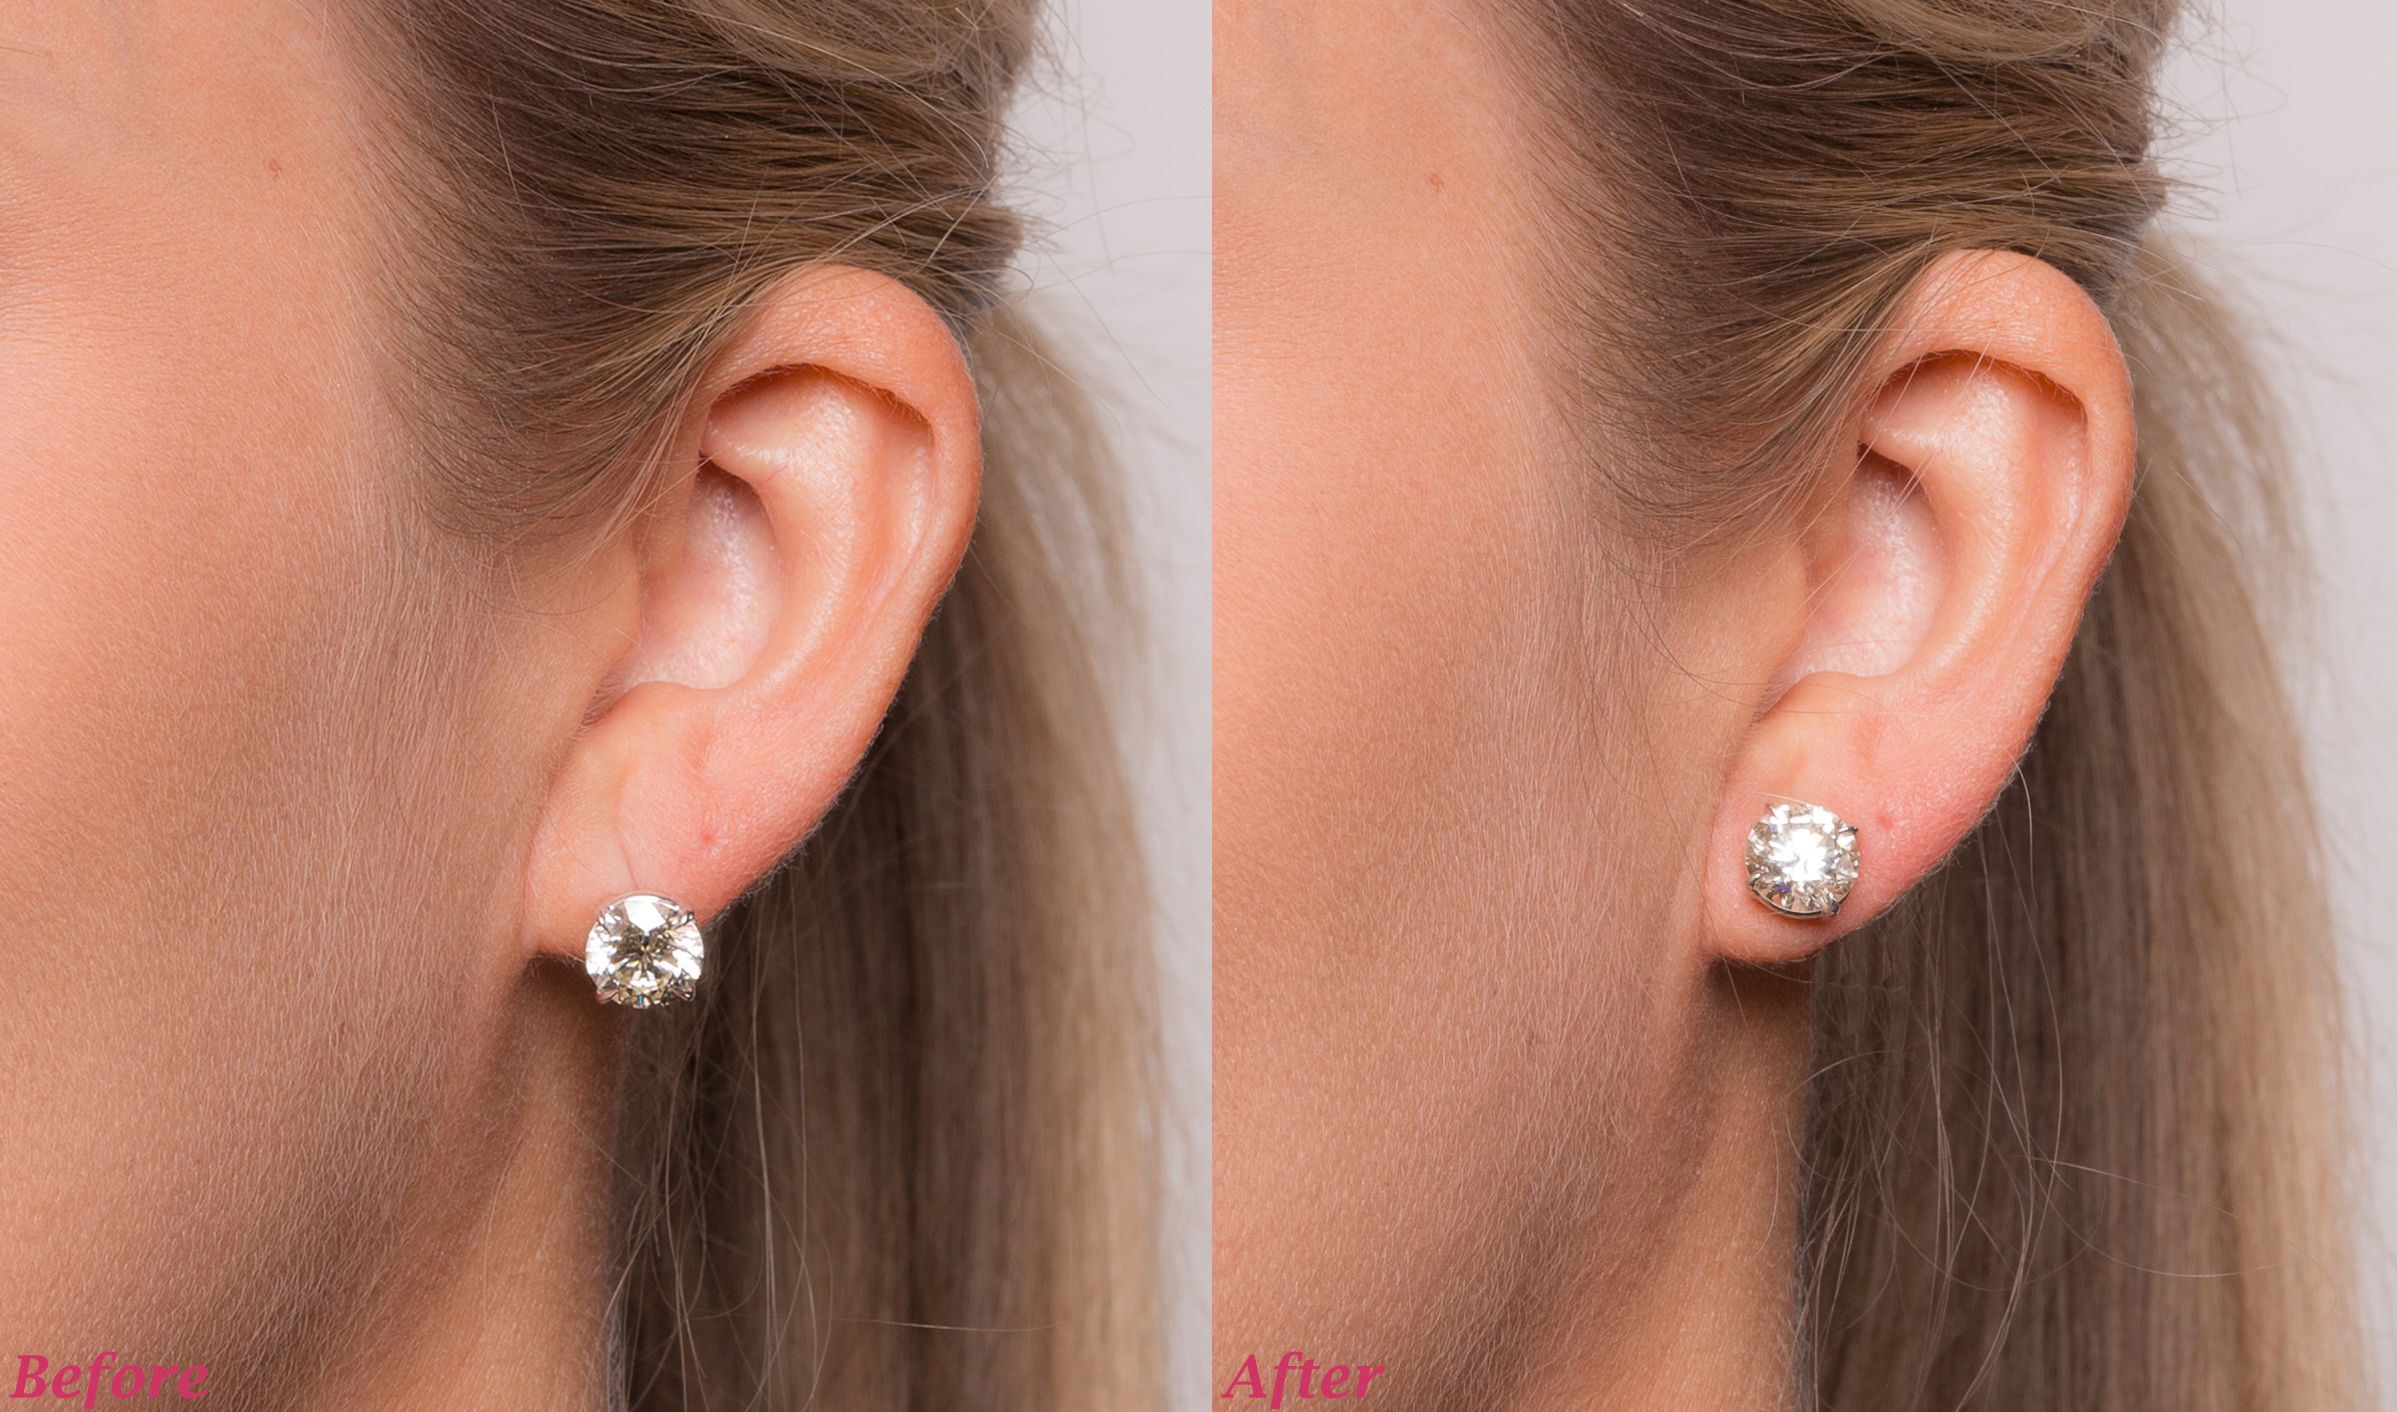 ce827d55f Before and after using Levears! Levears give earrings an instant lift. It's  the beauty hack you never knew existed but need!